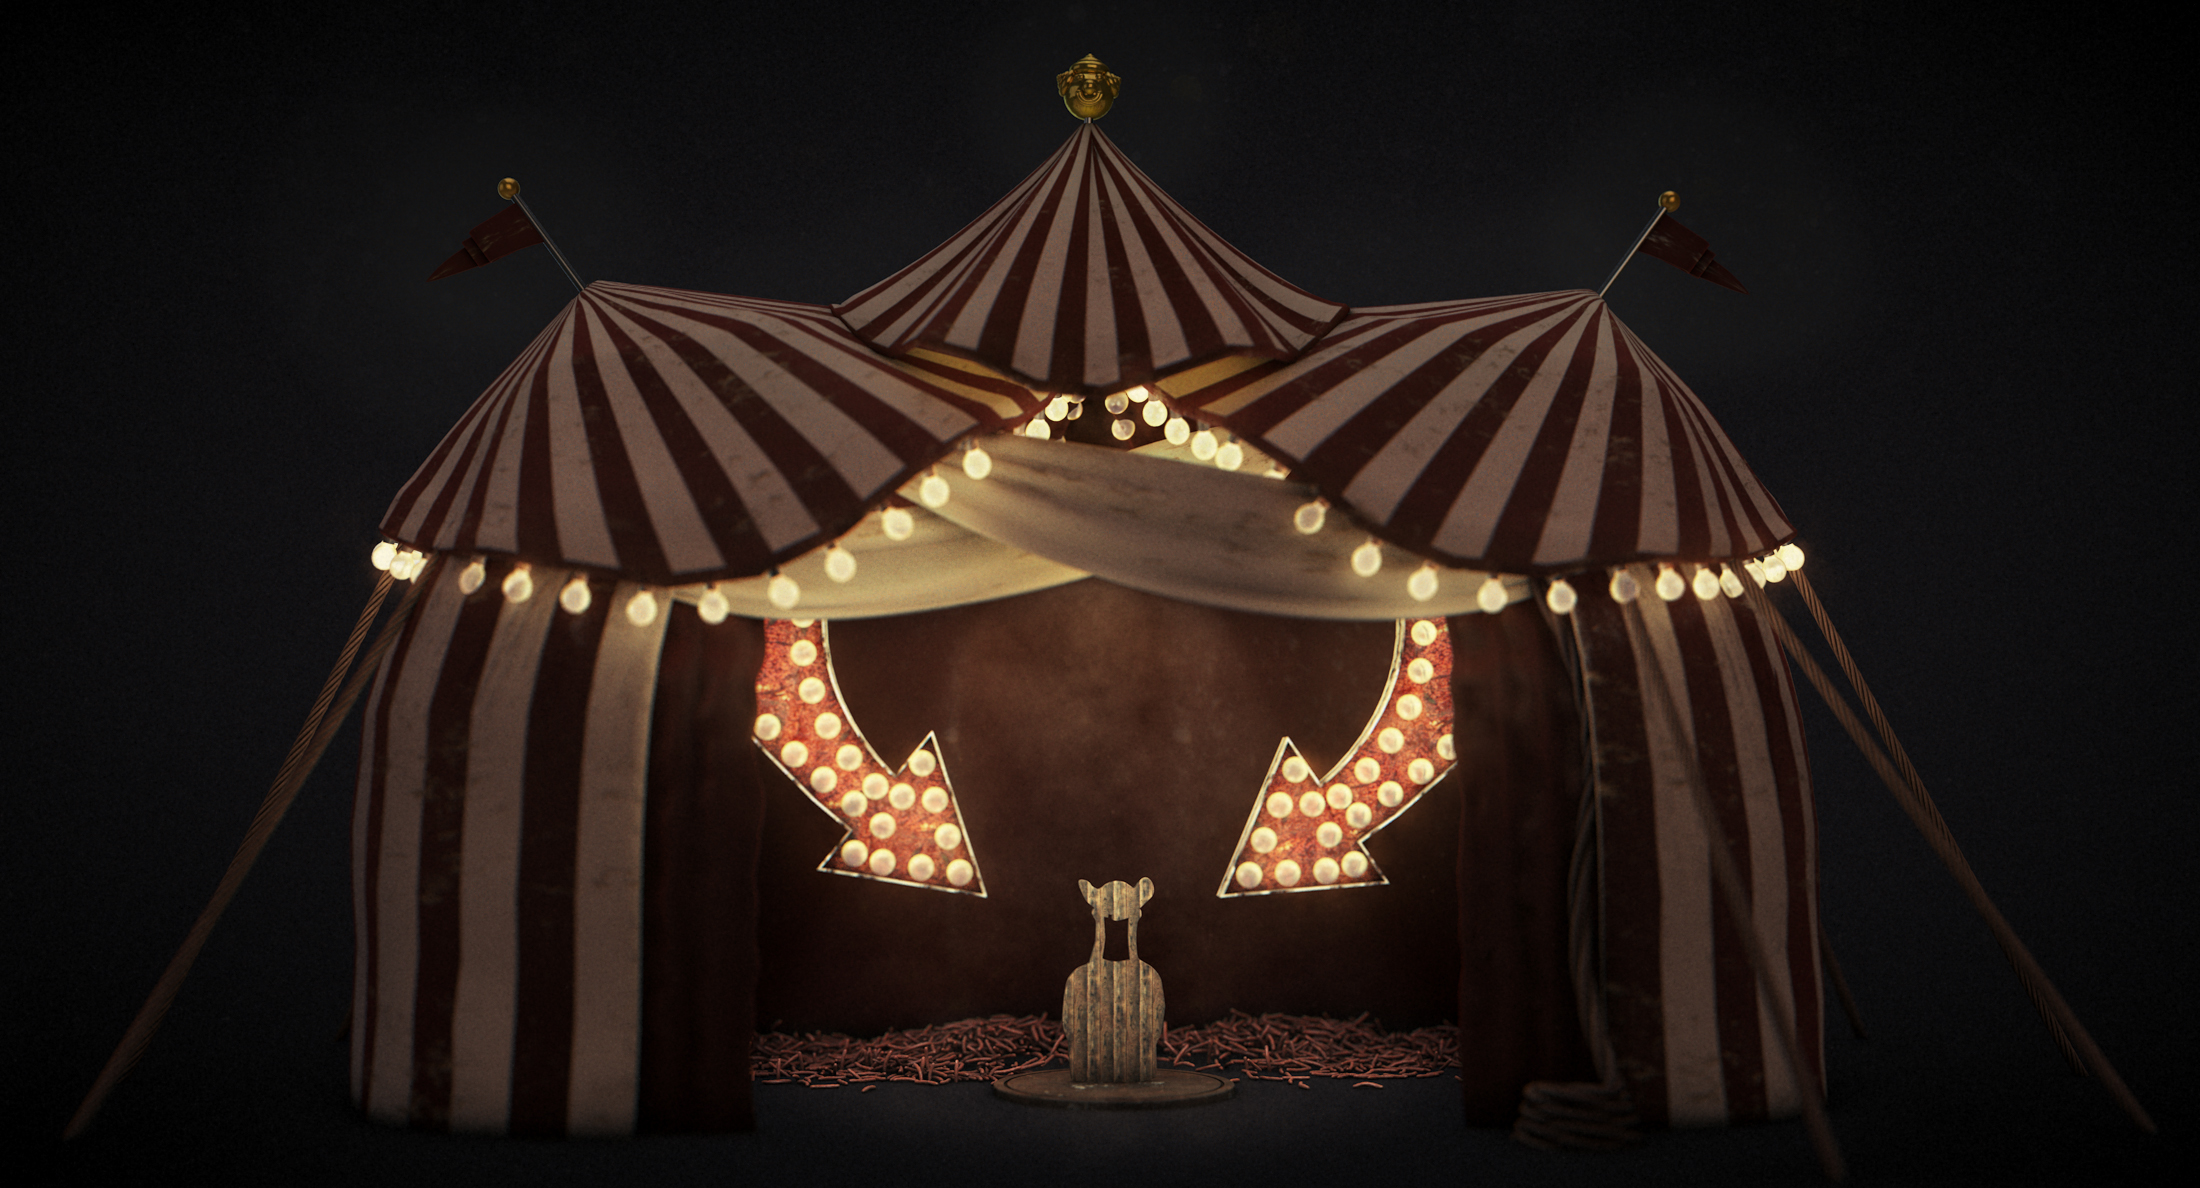 tent2 : circus tent at night - memphite.com